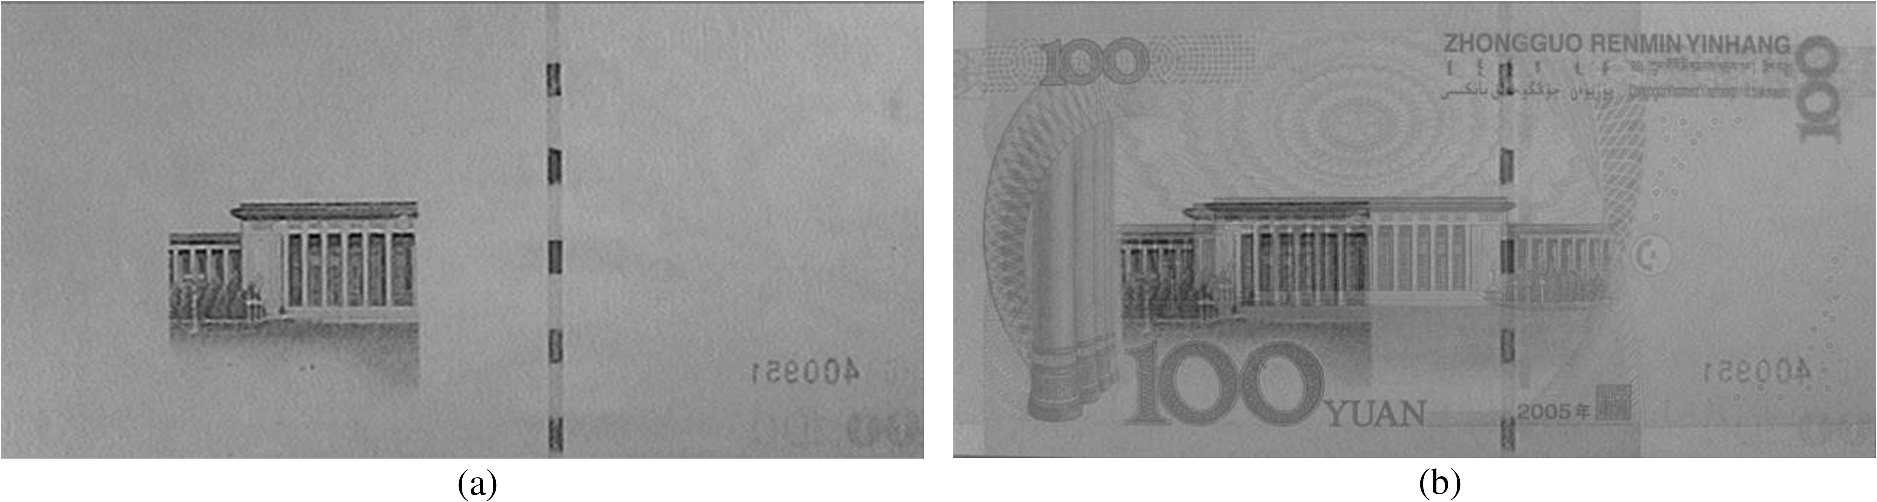 Dominant color and texture feature extraction for banknote